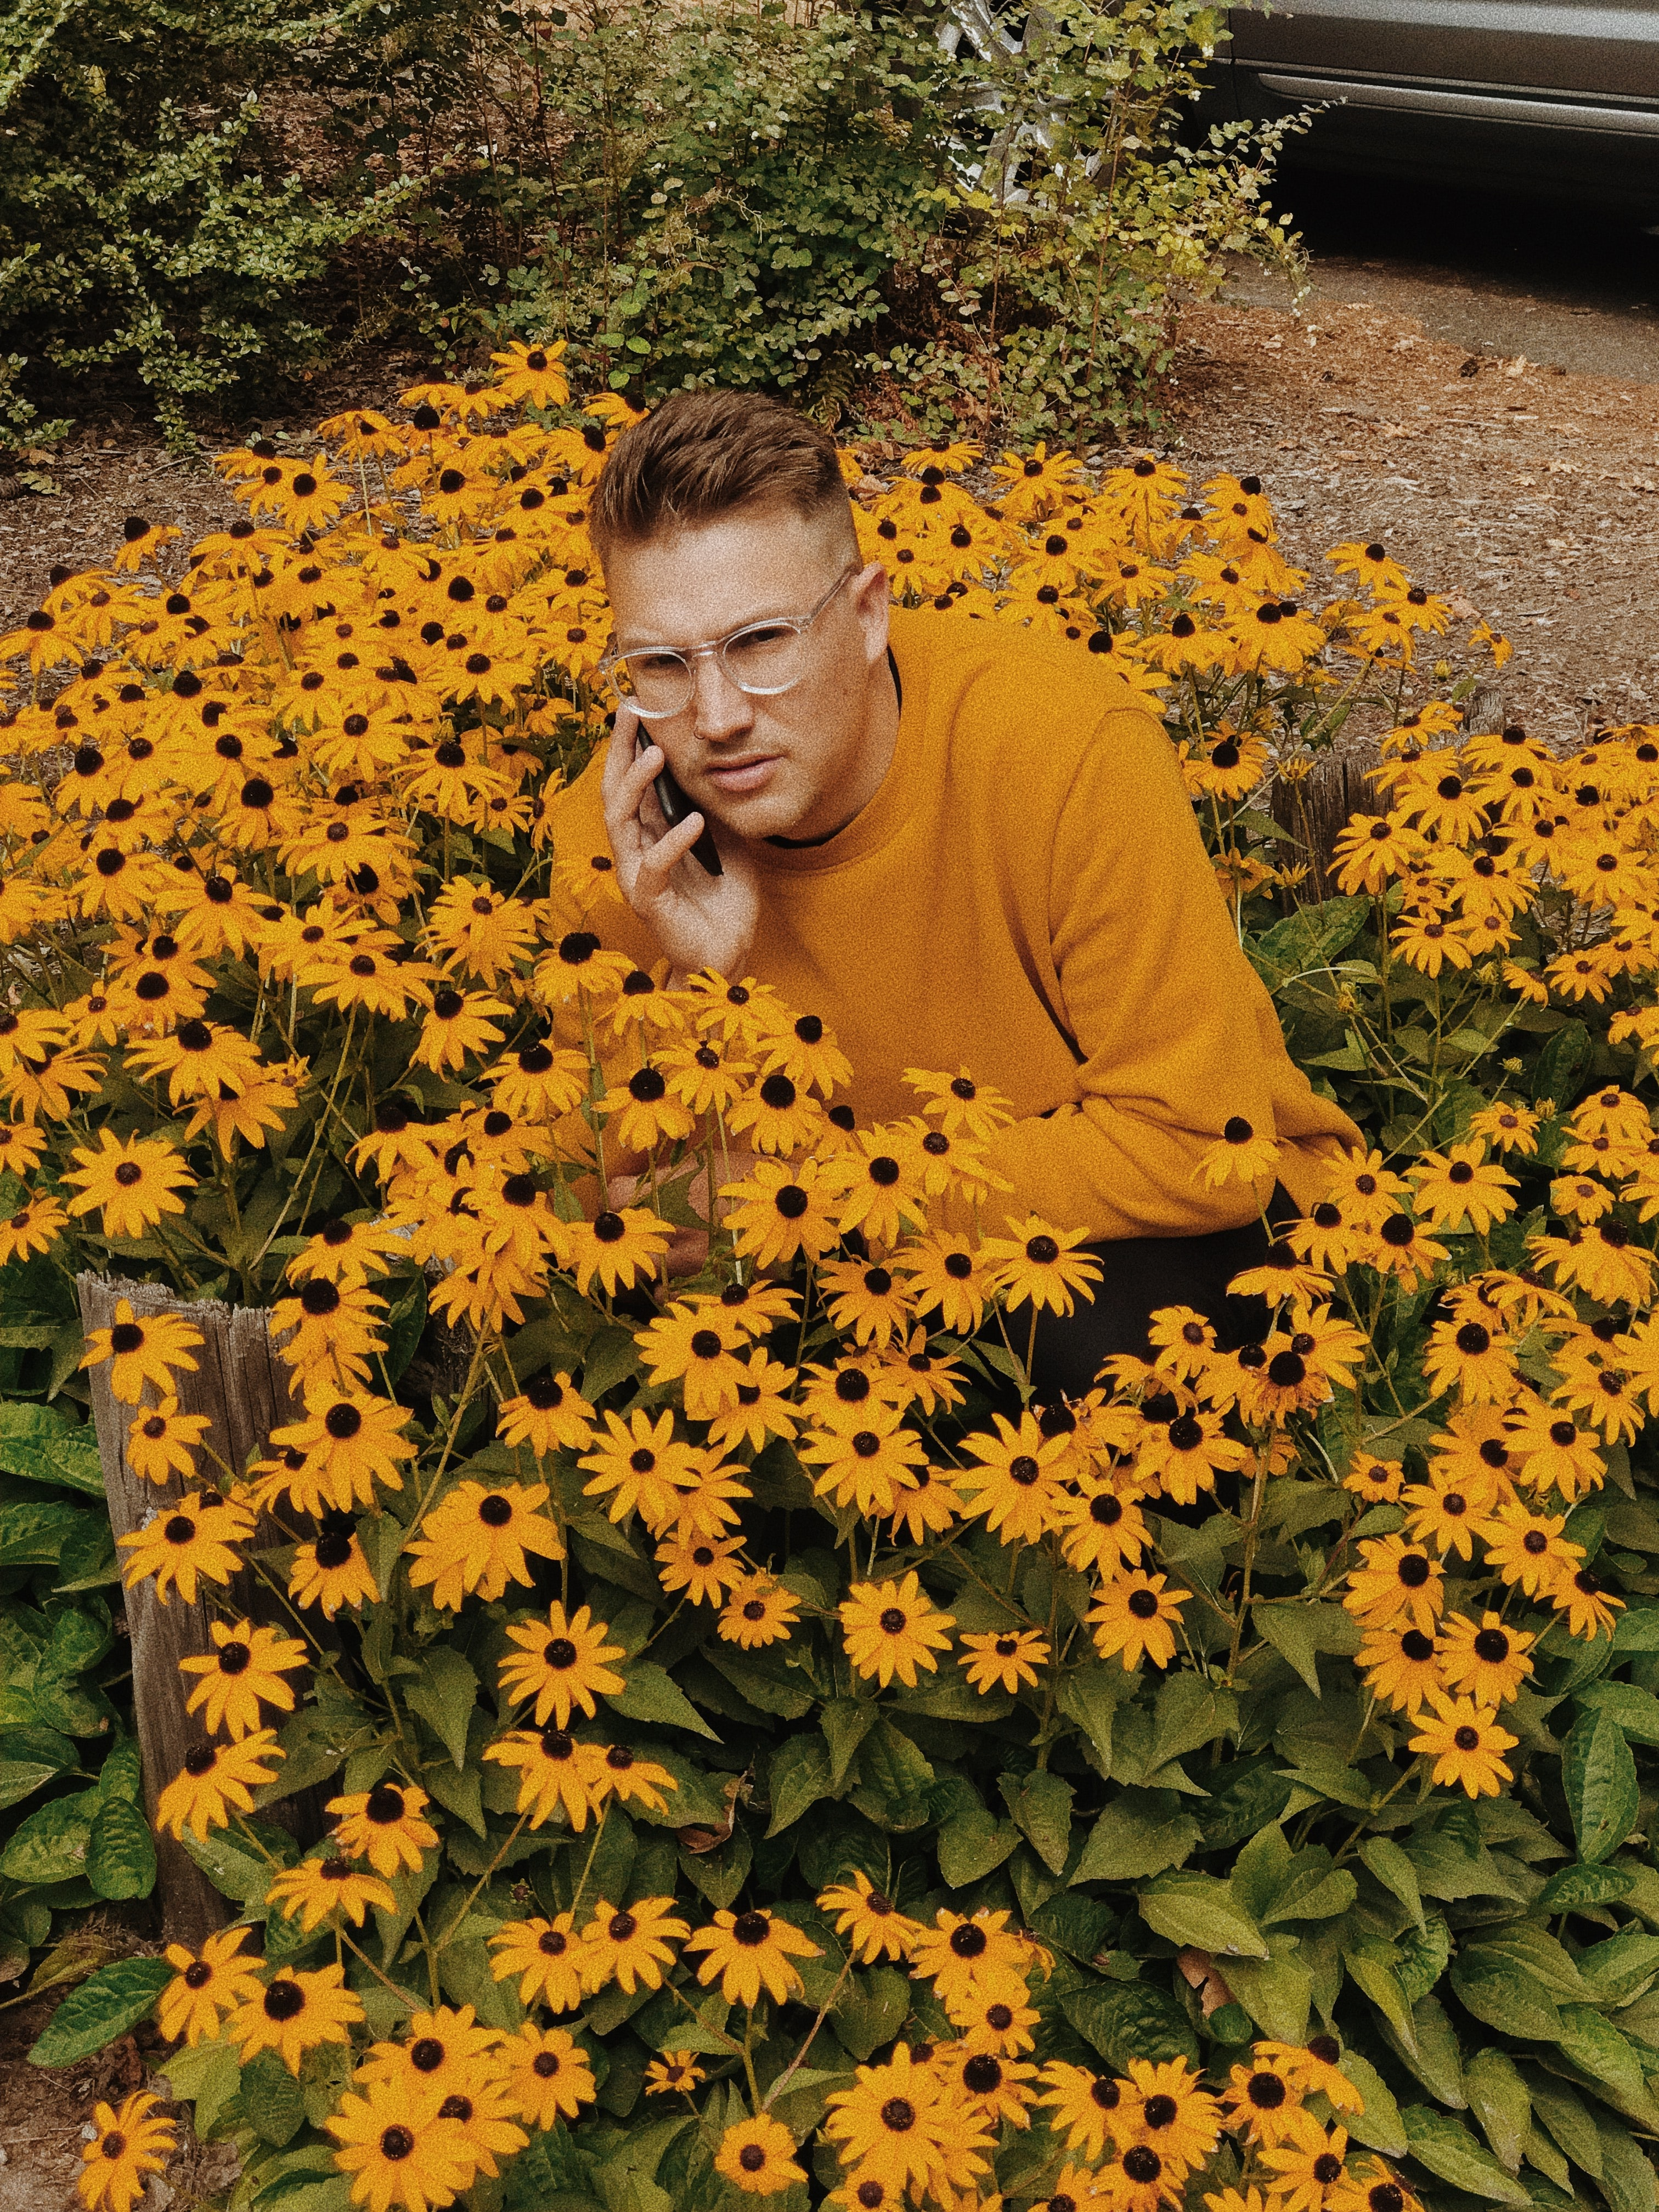 man wearing brown sweater docking in sunflowers